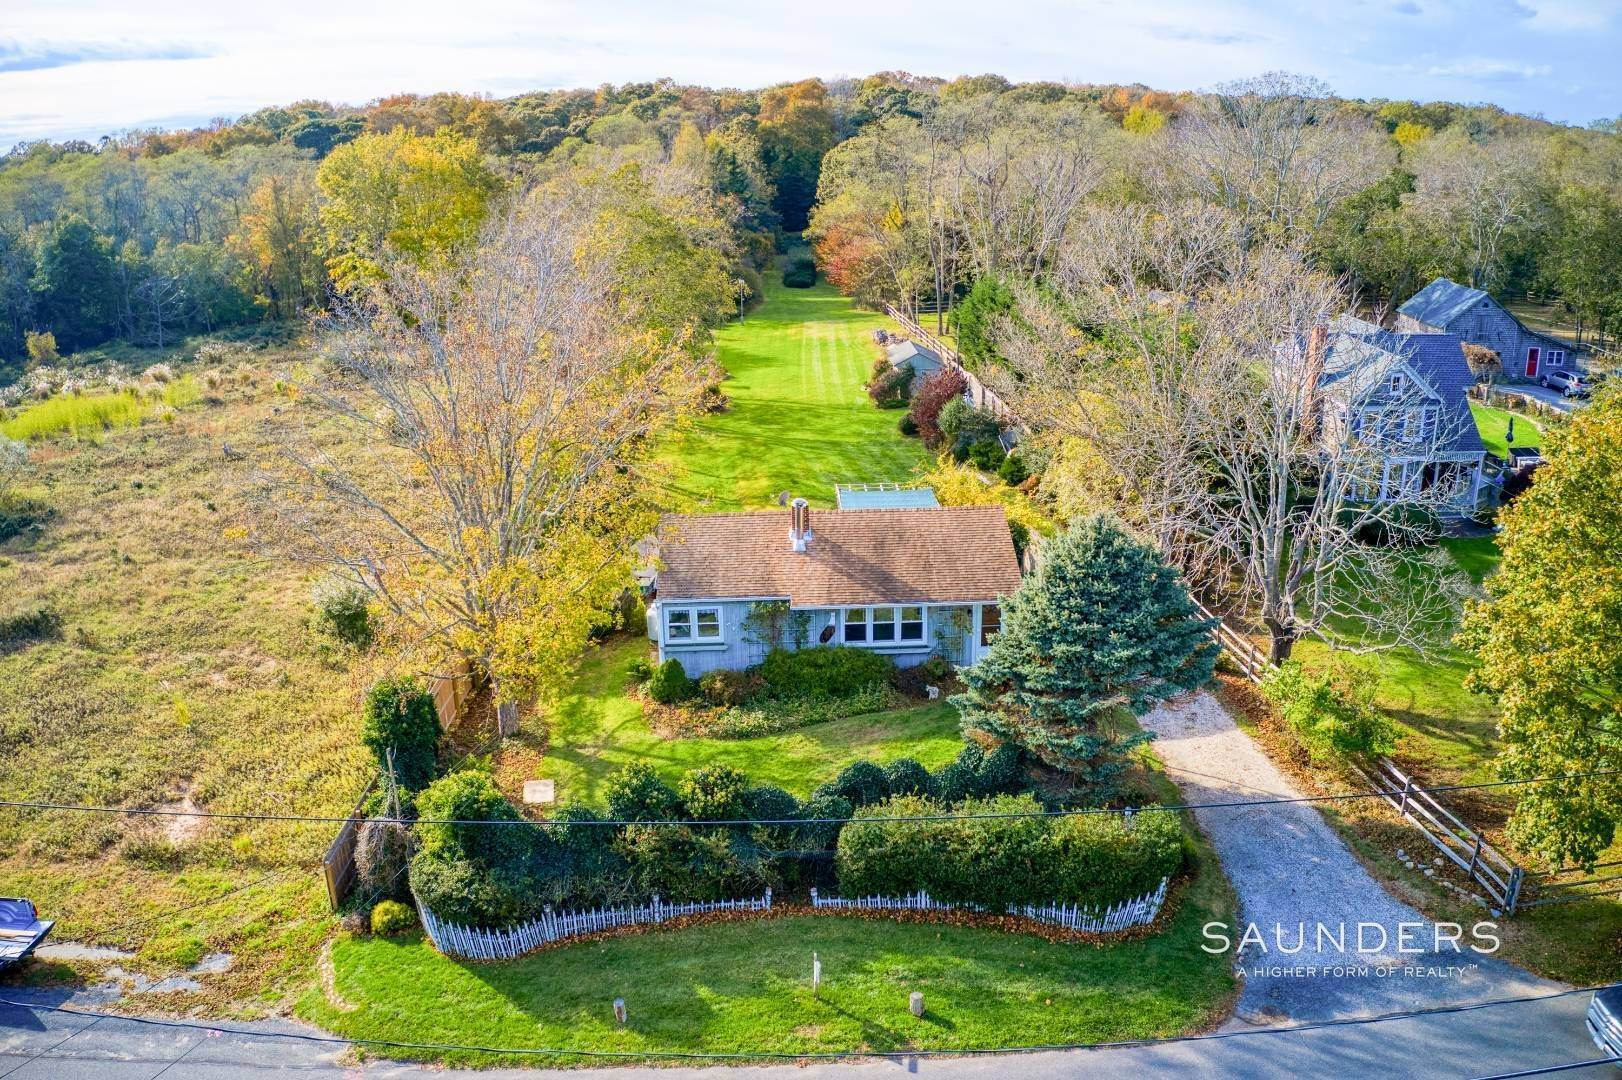 Single Family Homes for Sale at Shelter Island Country Bungalow Bordering Nature Trails 31 St. Marys Road, Shelter Island, NY 11964